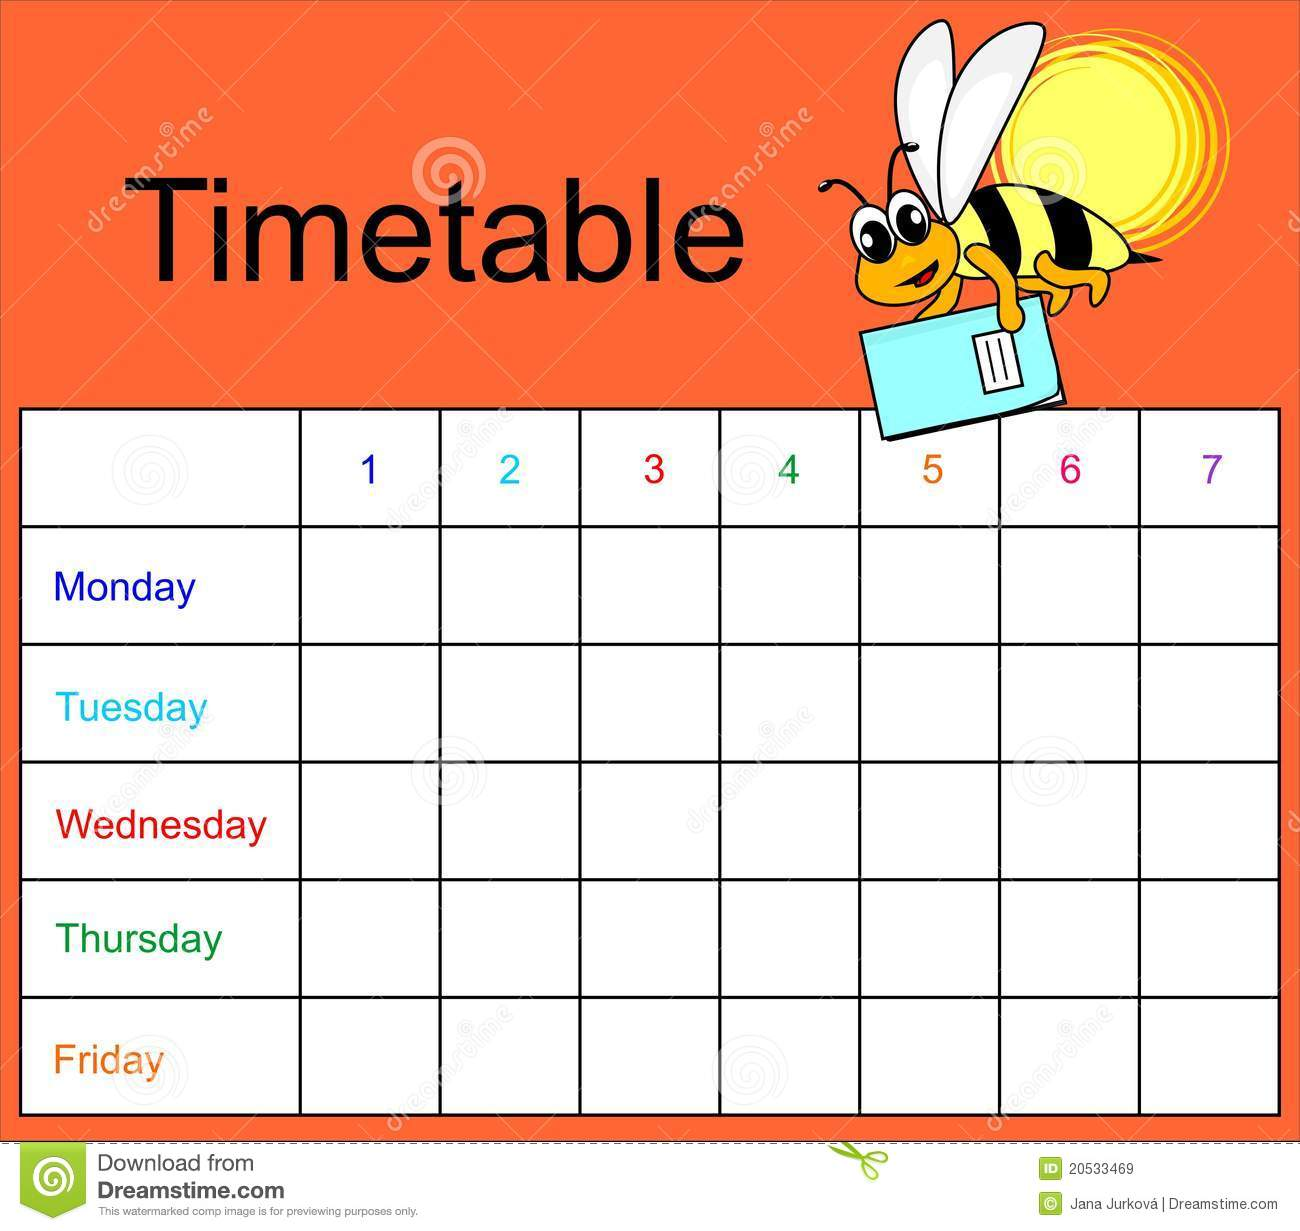 Quotes On School Time Table: Timetable Stock Vector. Illustration Of Meadow, Animal